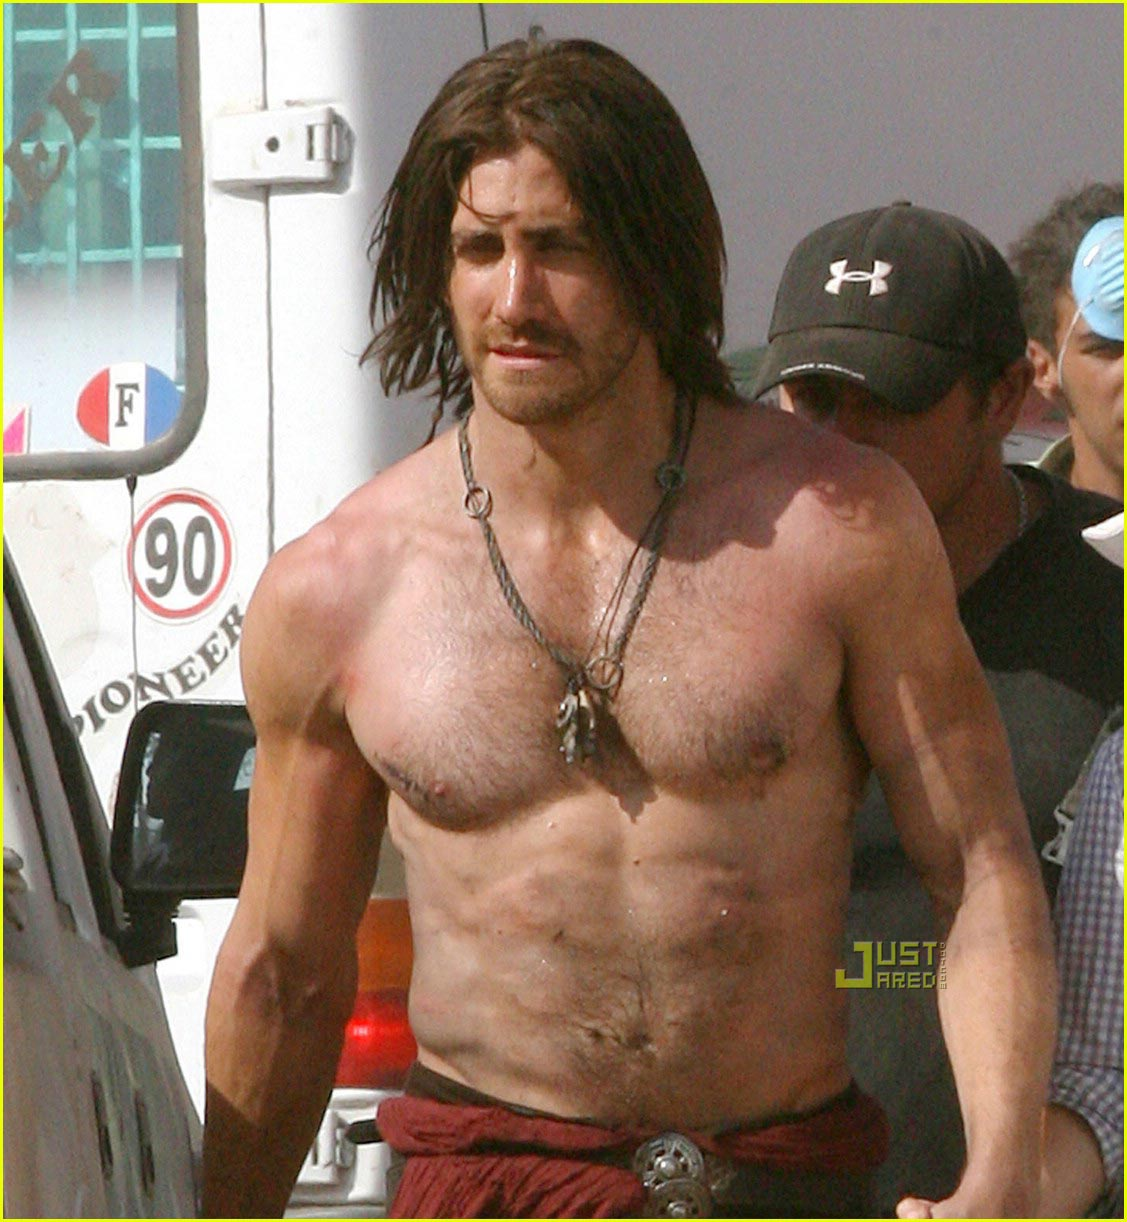 jake-gyllenhaal-shirtless-prince-of-persia1.jpg